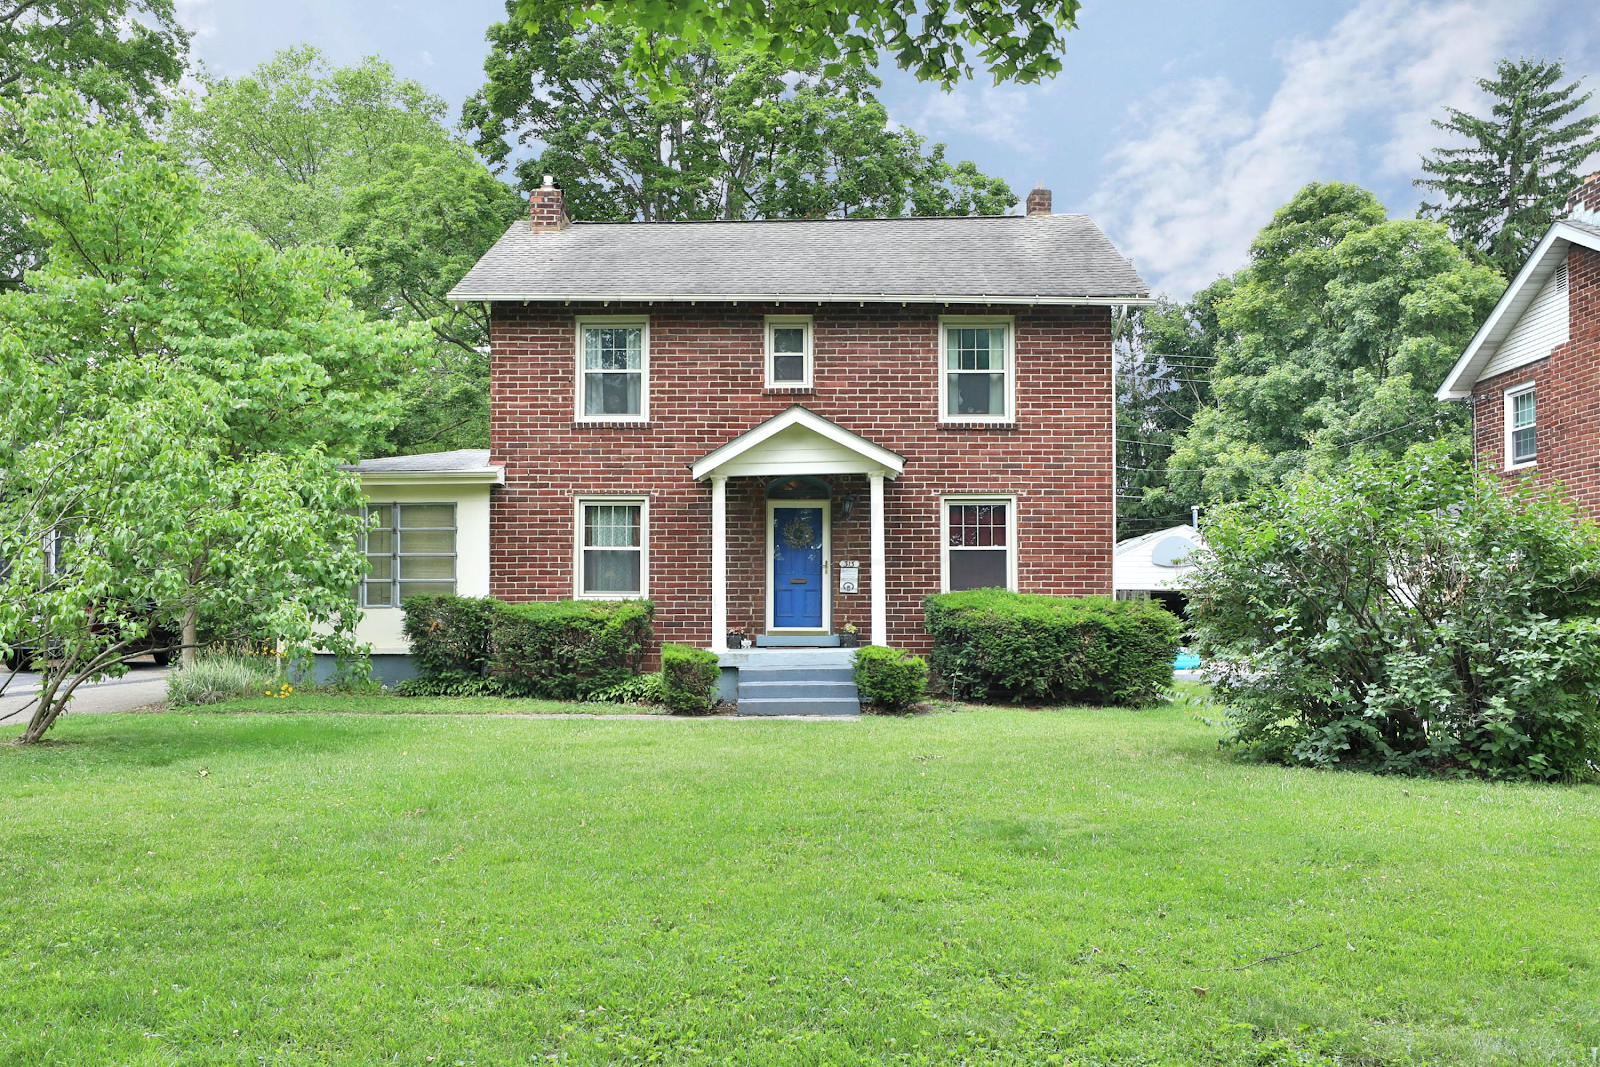 cozy three bedroom home in the heart of Bexley. red brick house and blue front door